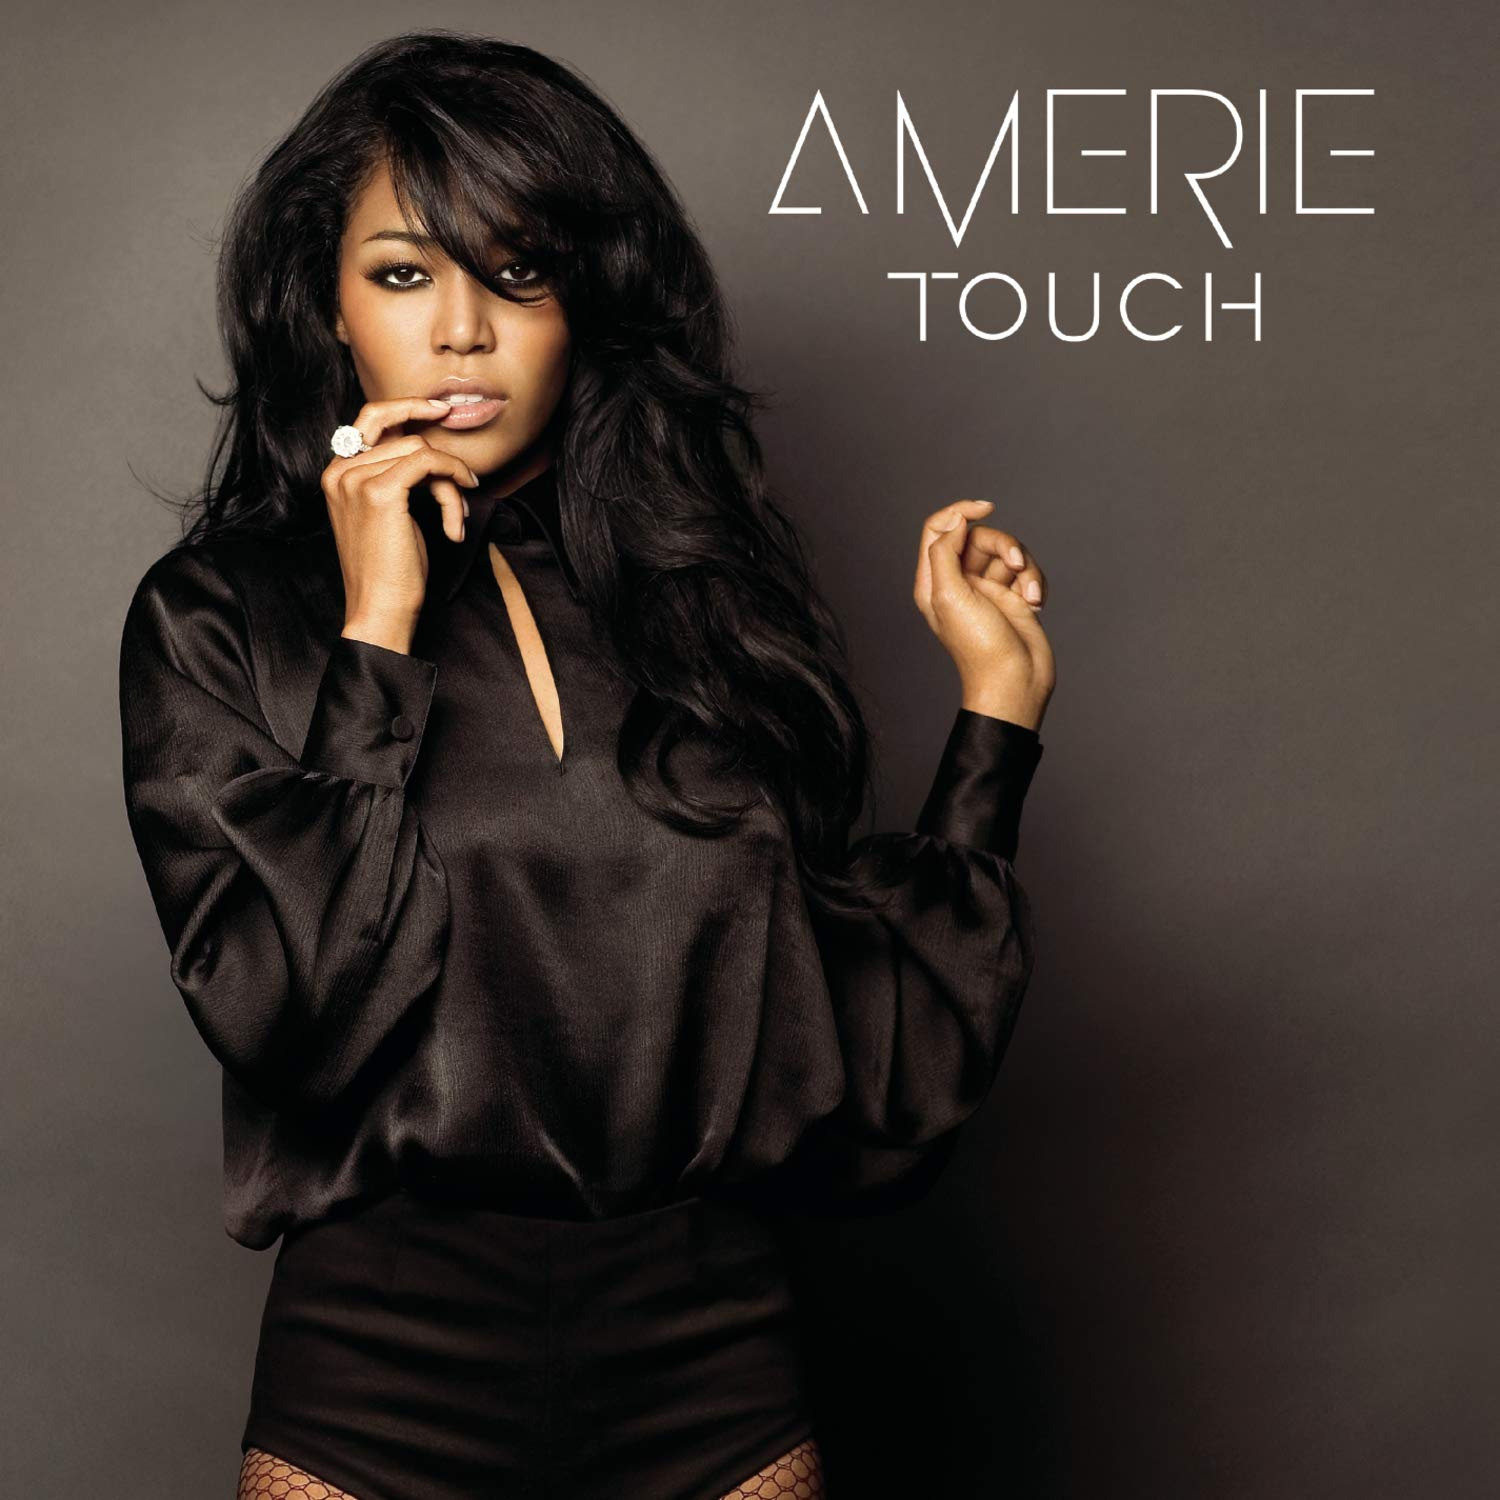 Amerie touch cover